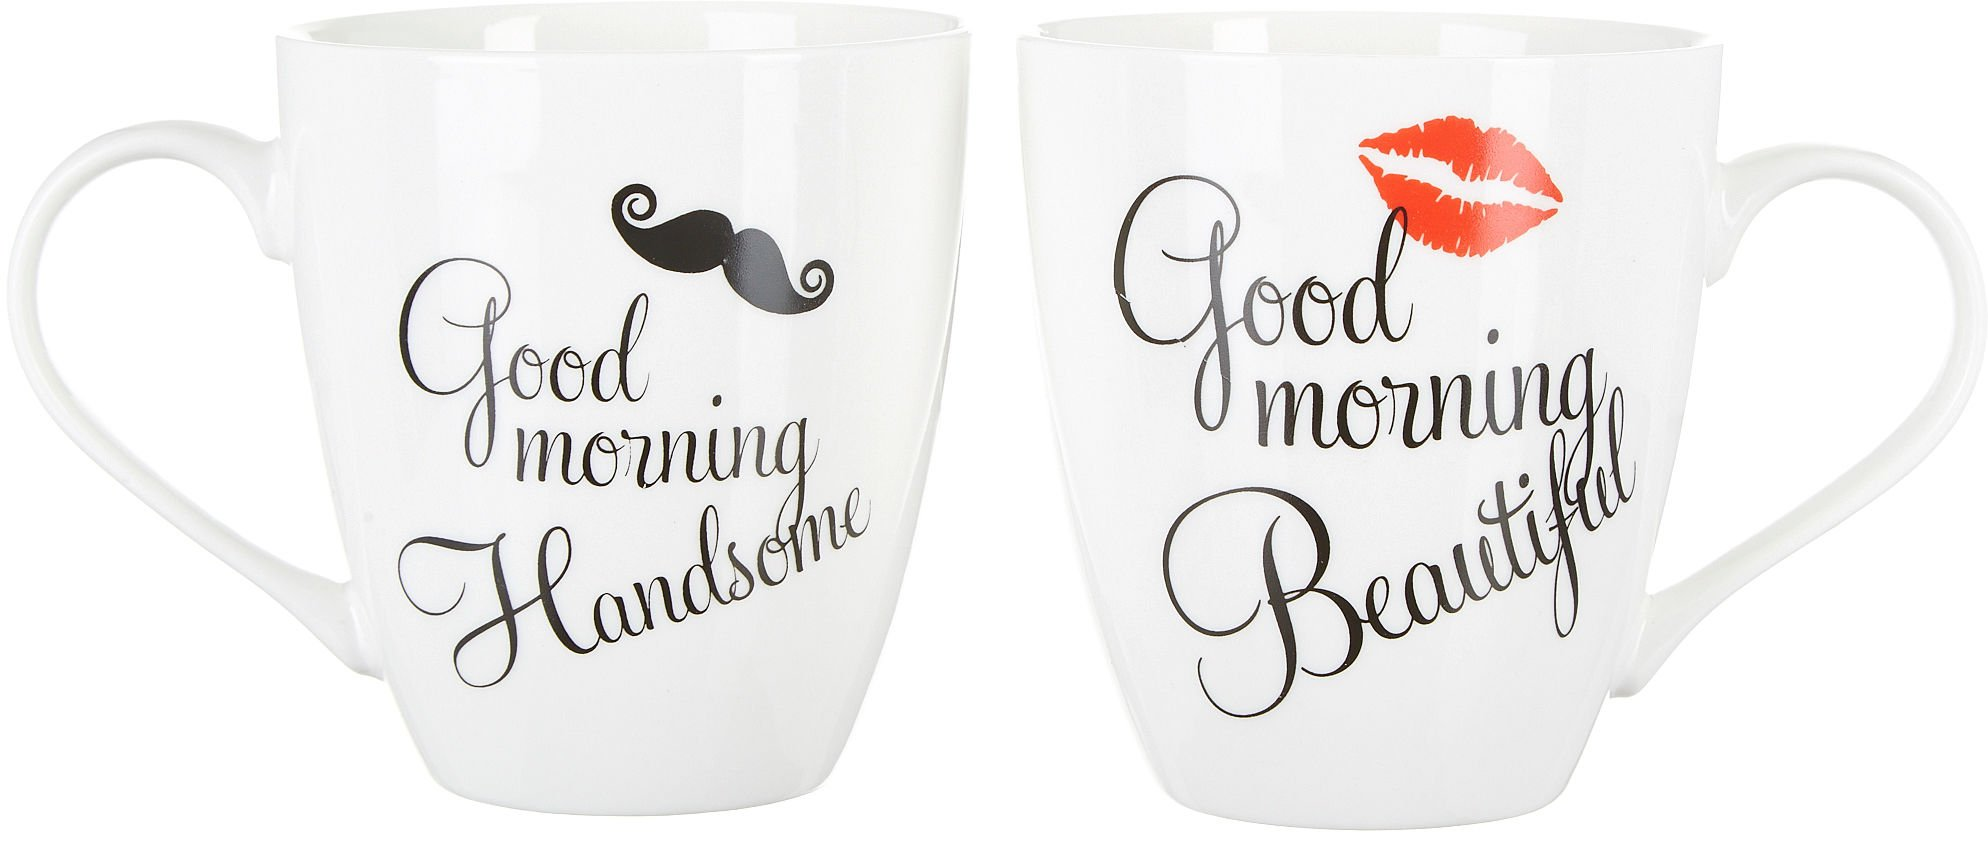 Pfaltzgraff Good Morning Beautiful and Handsome 18 Oz. Mug Set in Black and White by Pfaltzgraff Everyday by Pfaltzgraff Everyday